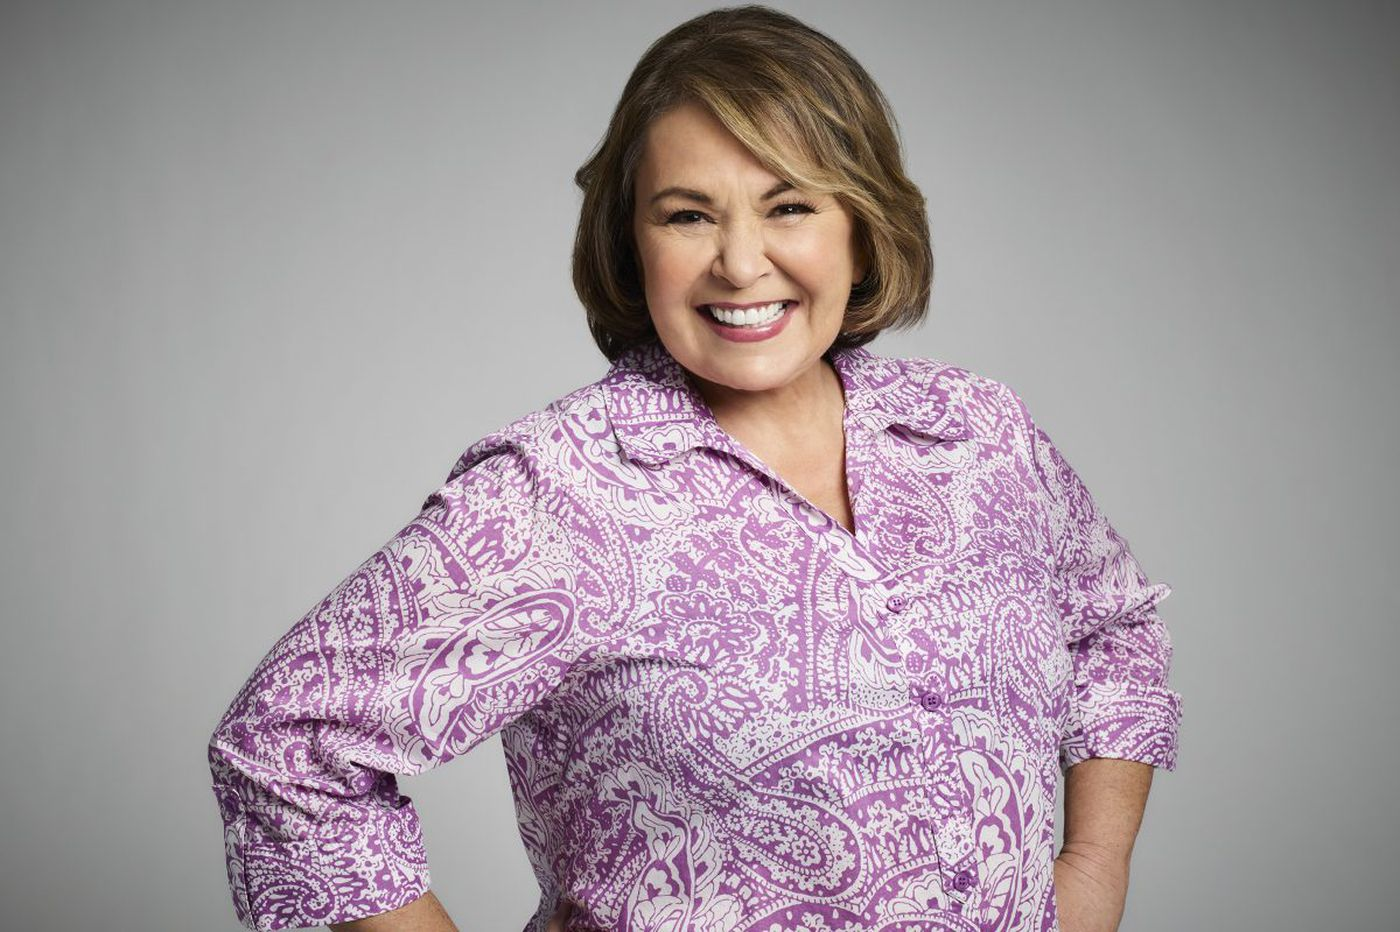 No, Ambien did not make Roseanne Barr a racist